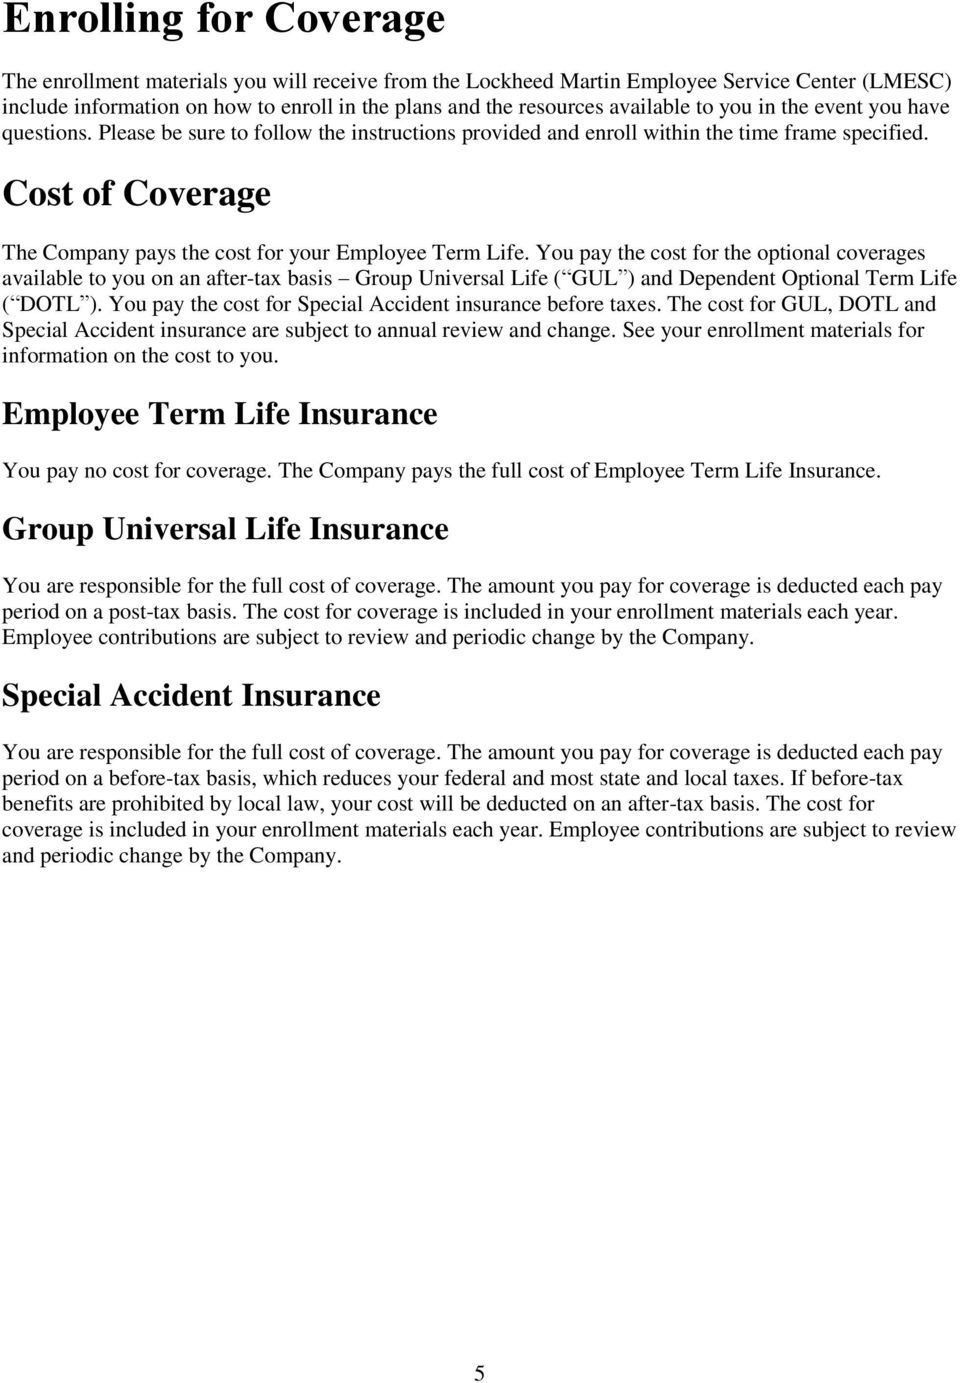 Cost of Coverage The Company pays the cost for your Employee Term Life.